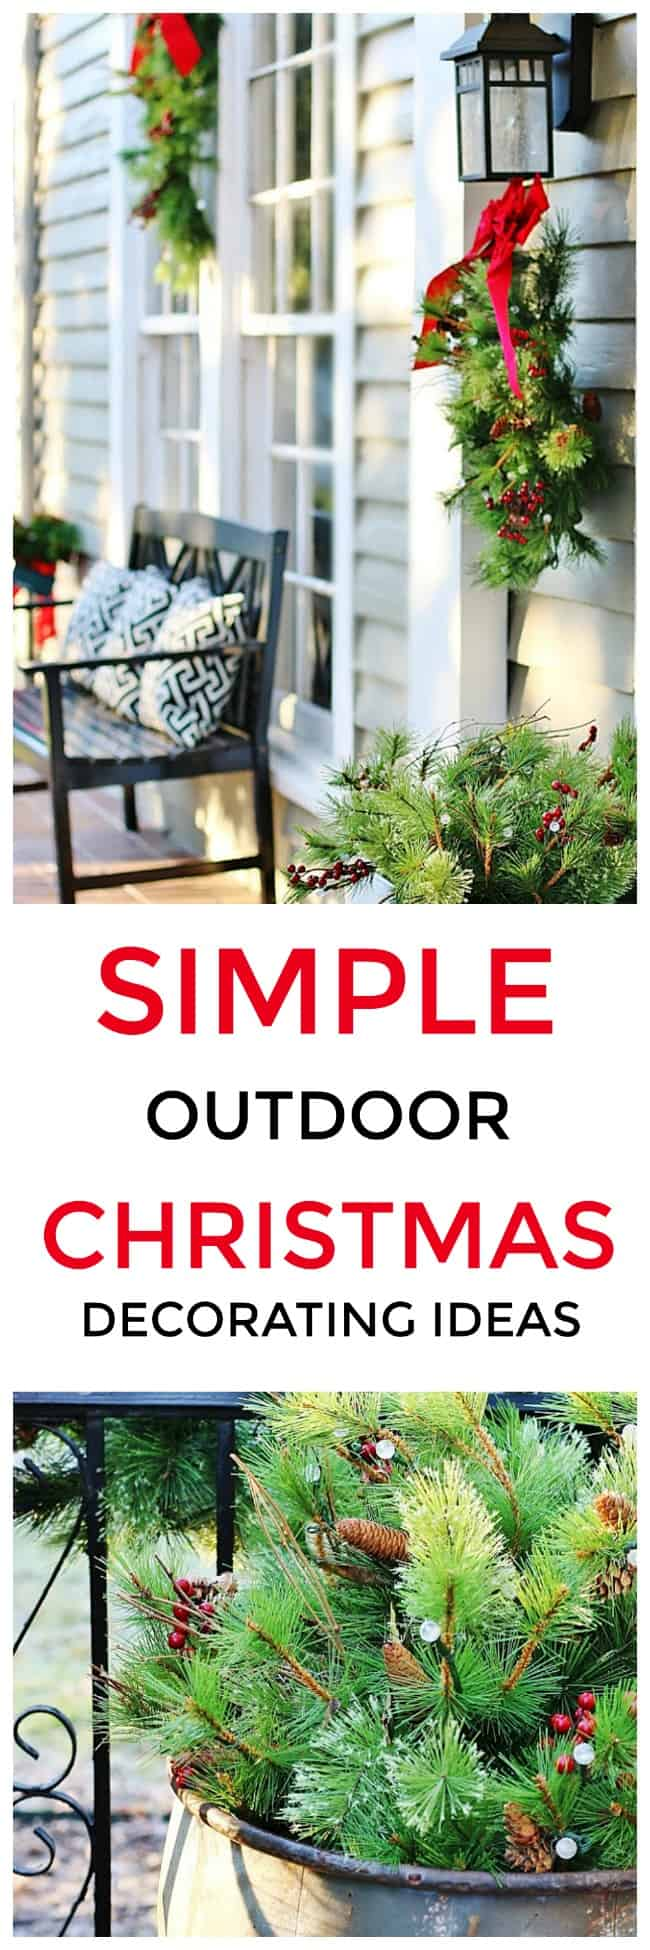 Outdoor Christmas Decorating Ideas Thistlewood Farm